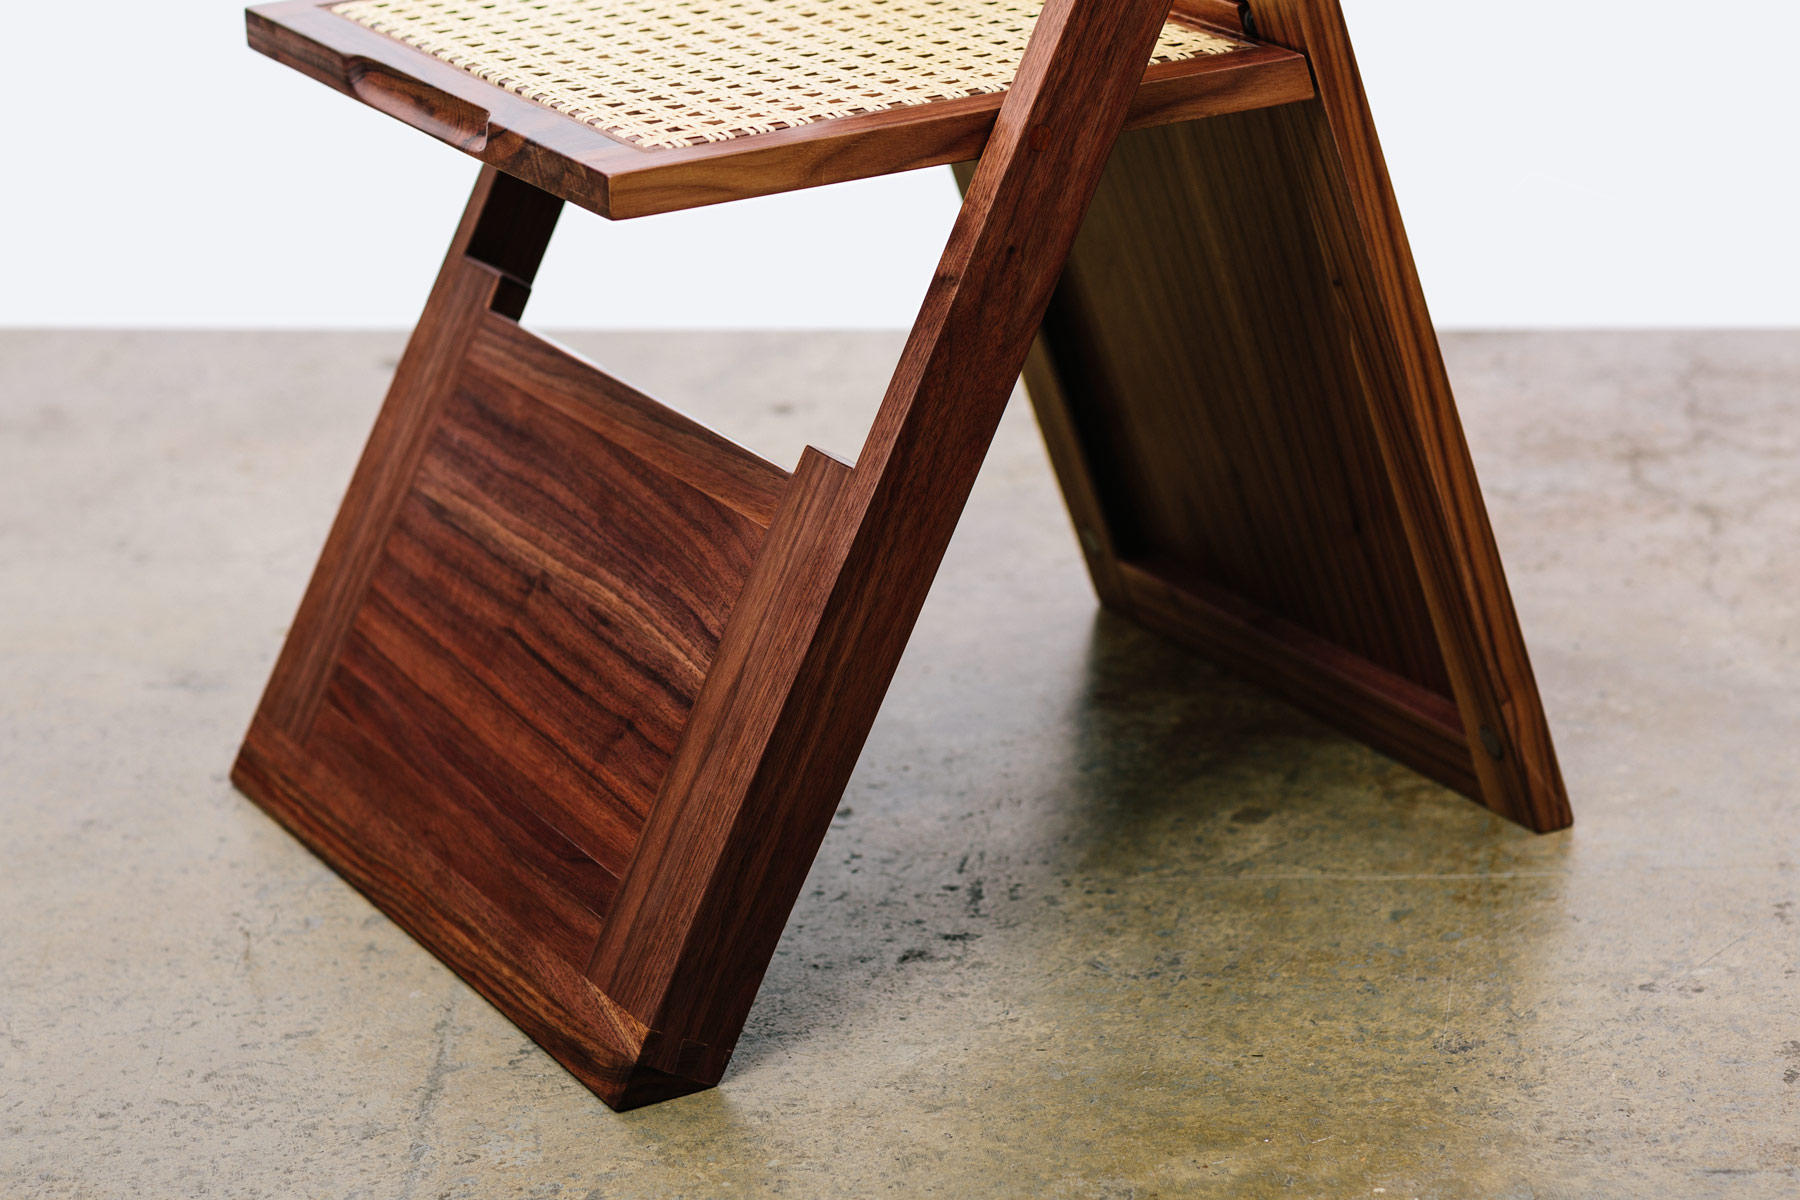 The Walnut Golden Ratio Chair Chairs From Bellwether Furniture